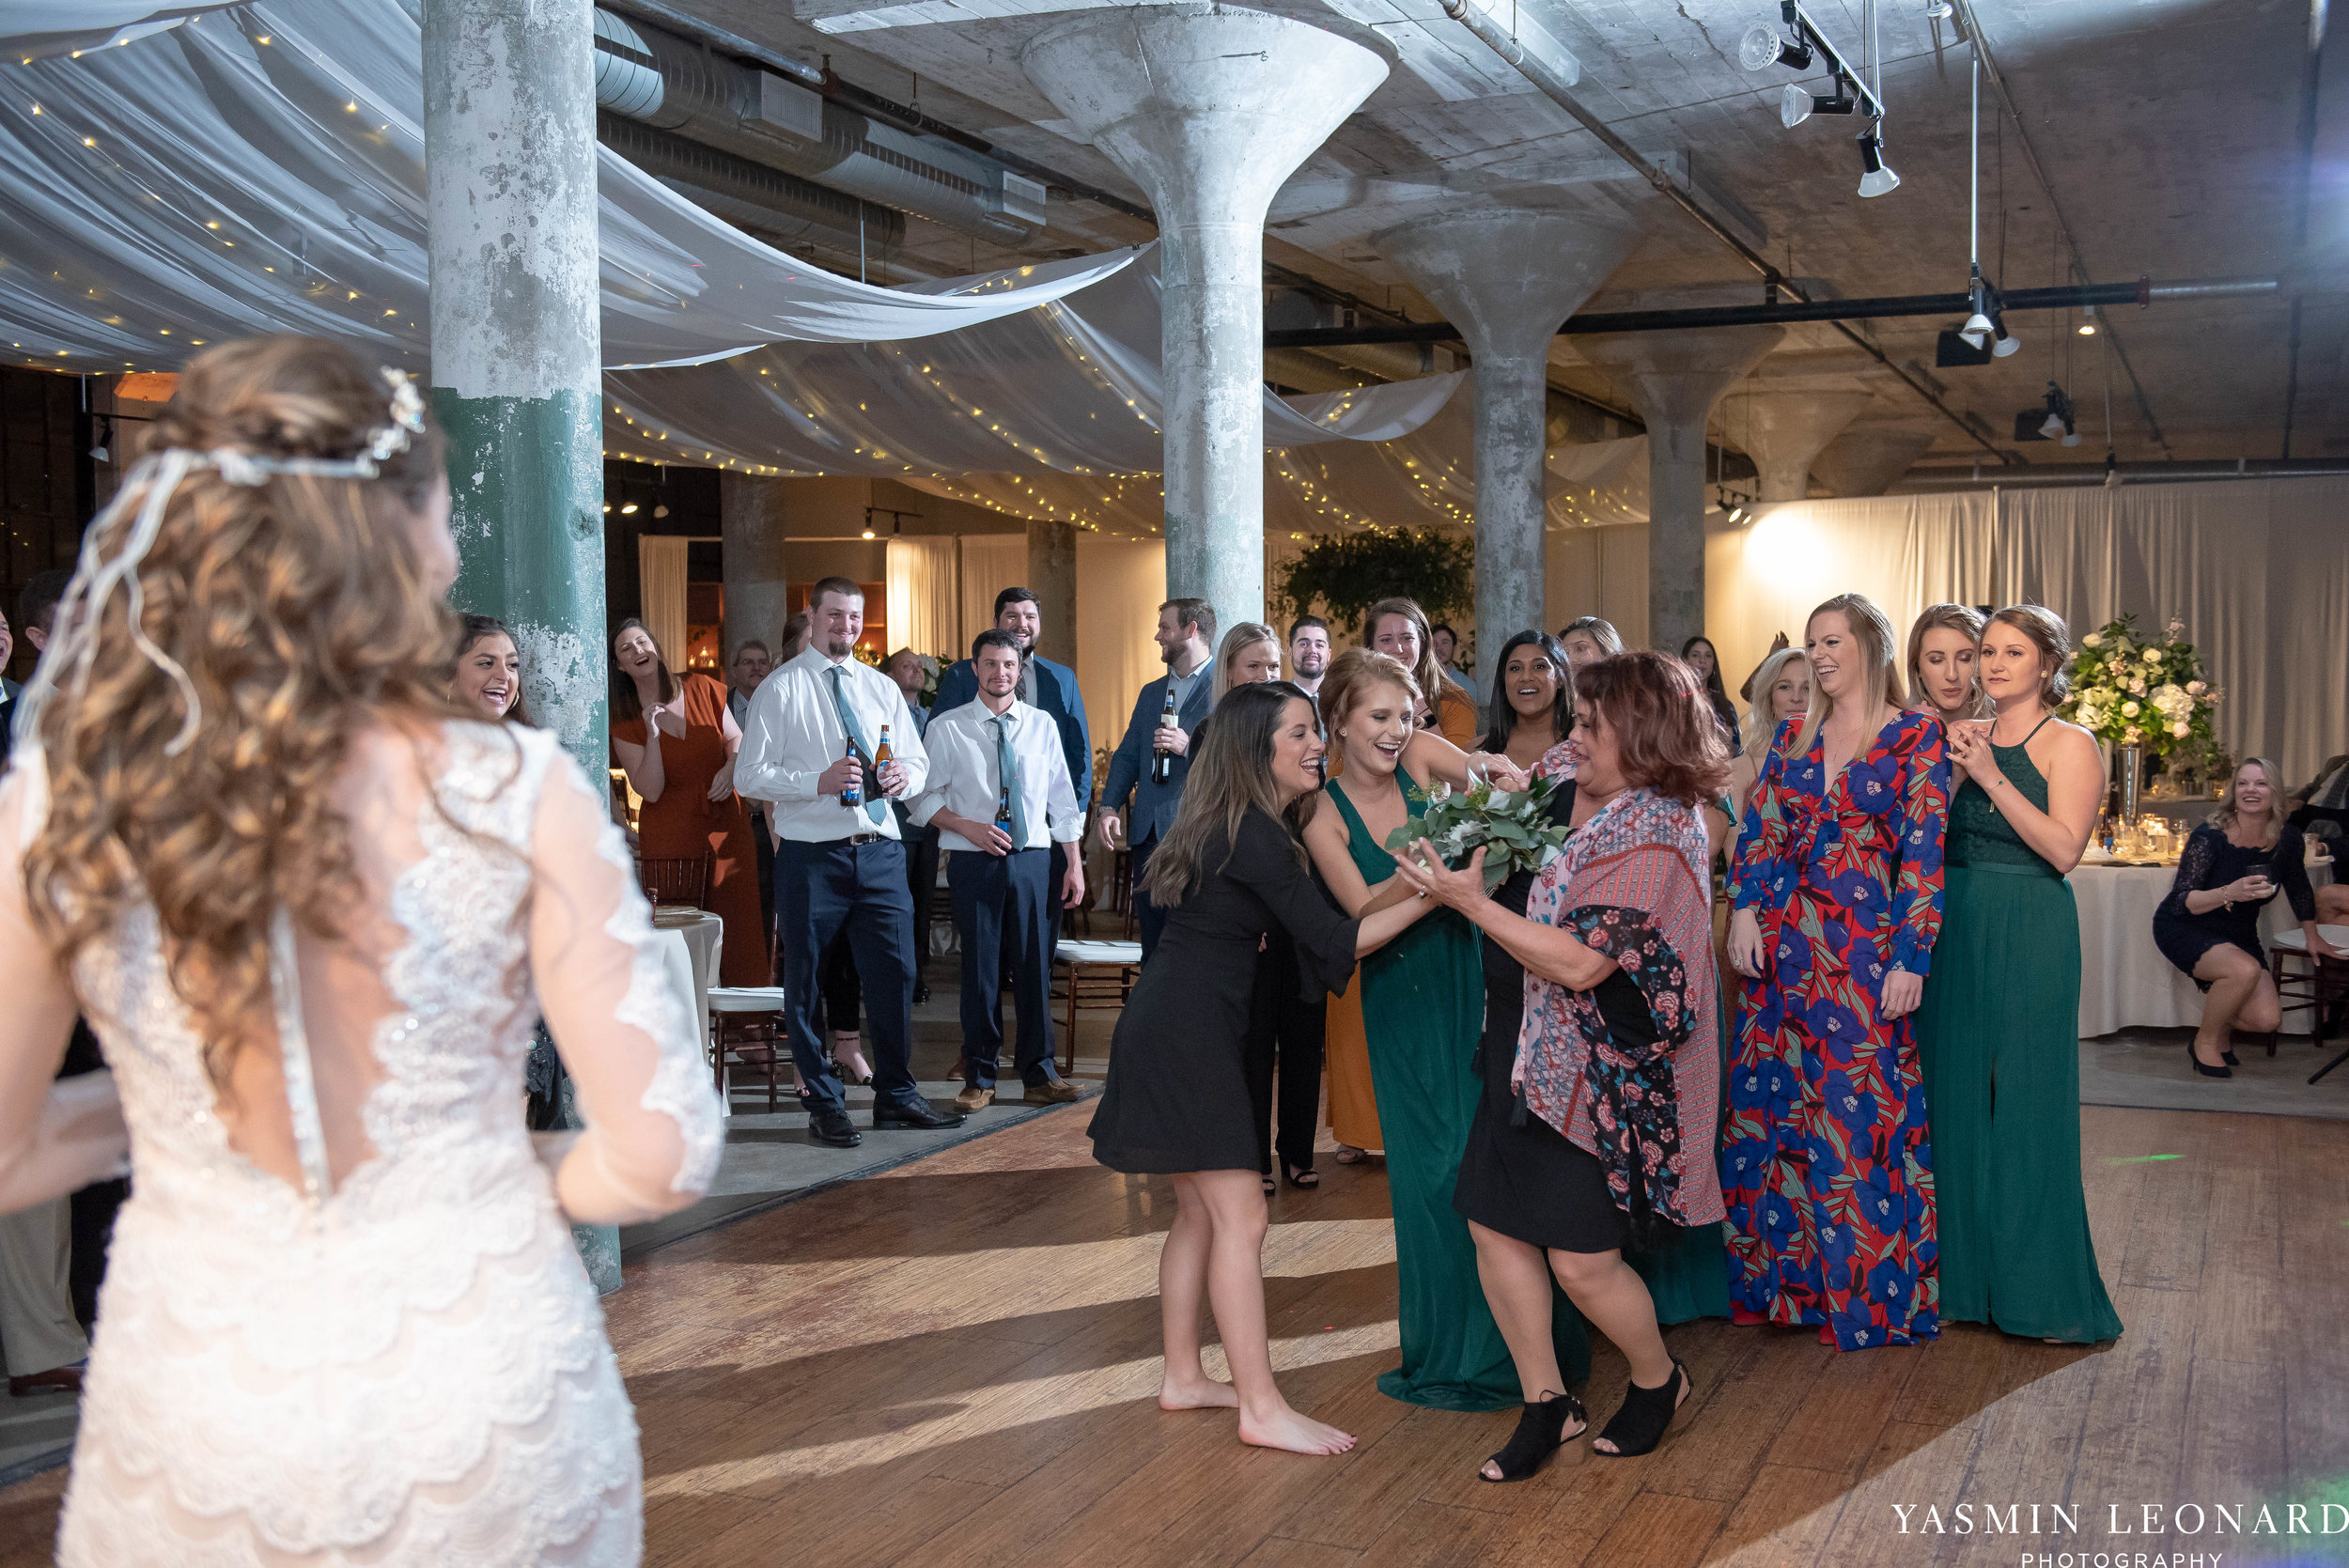 The Lofts at Union Square - Unions - High Point Weddings - NC Weddings - NC Wedding Photographer - Yasmin Leonard Photography - Just Priceless - Green Pink and Gold Wedding - Elegant Wedding-51.jpg